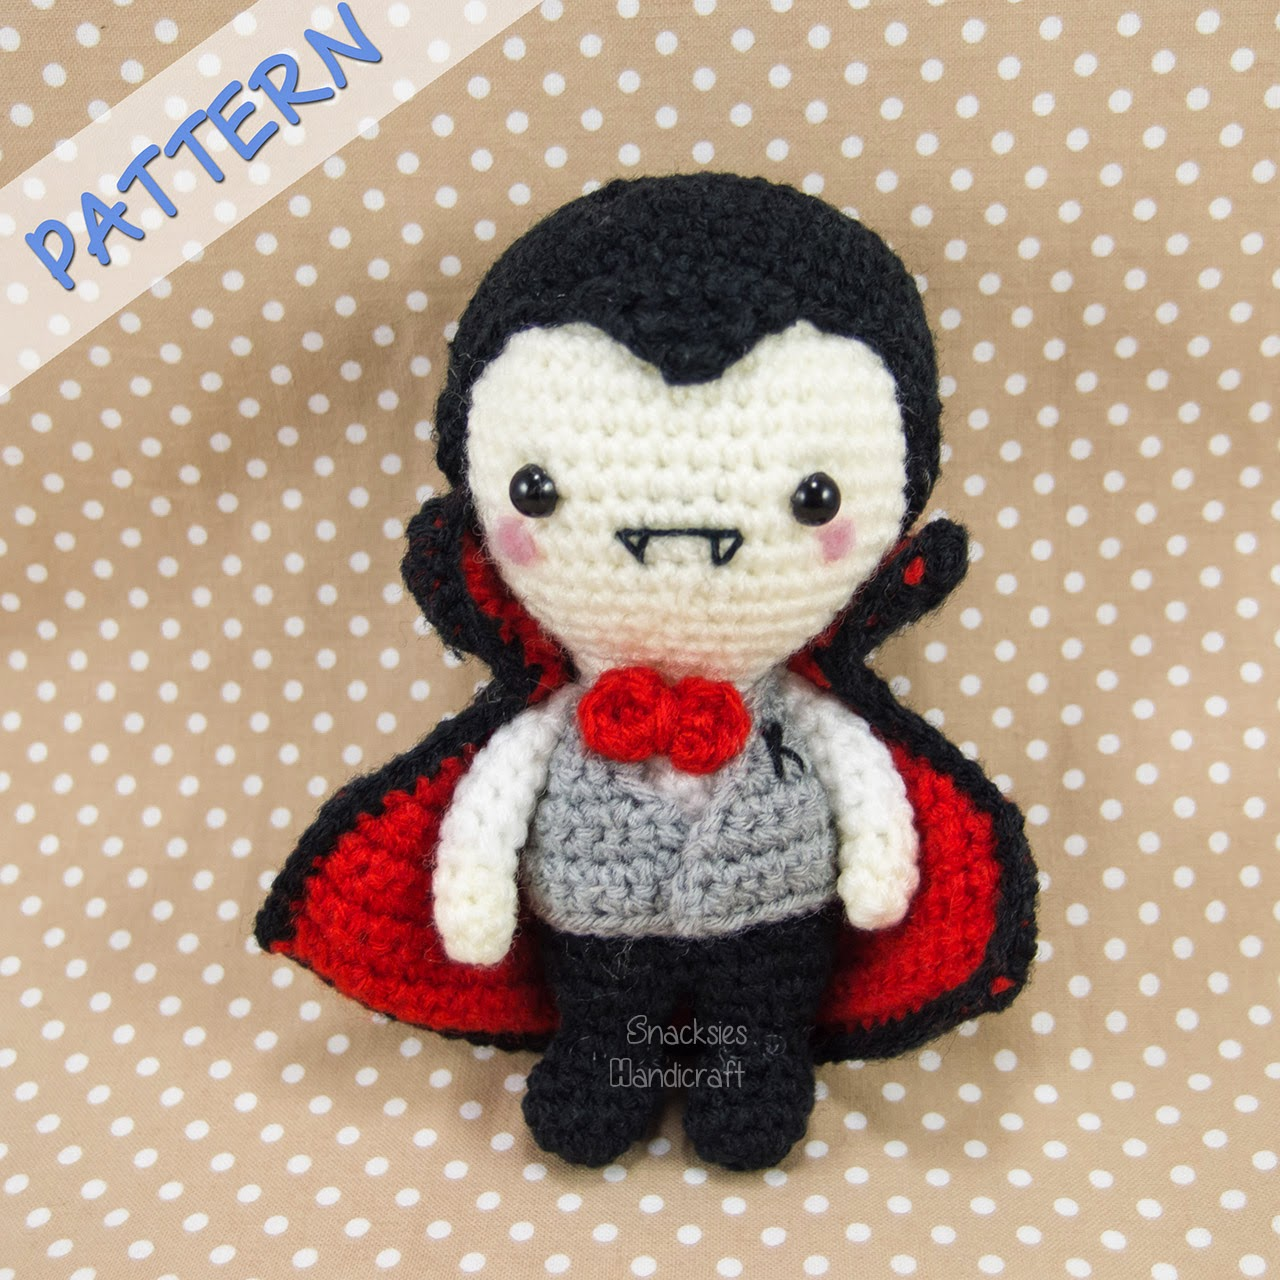 Free Amigurumi Patterns Halloween : July 2014 ~ Snacksies Handicraft Corner